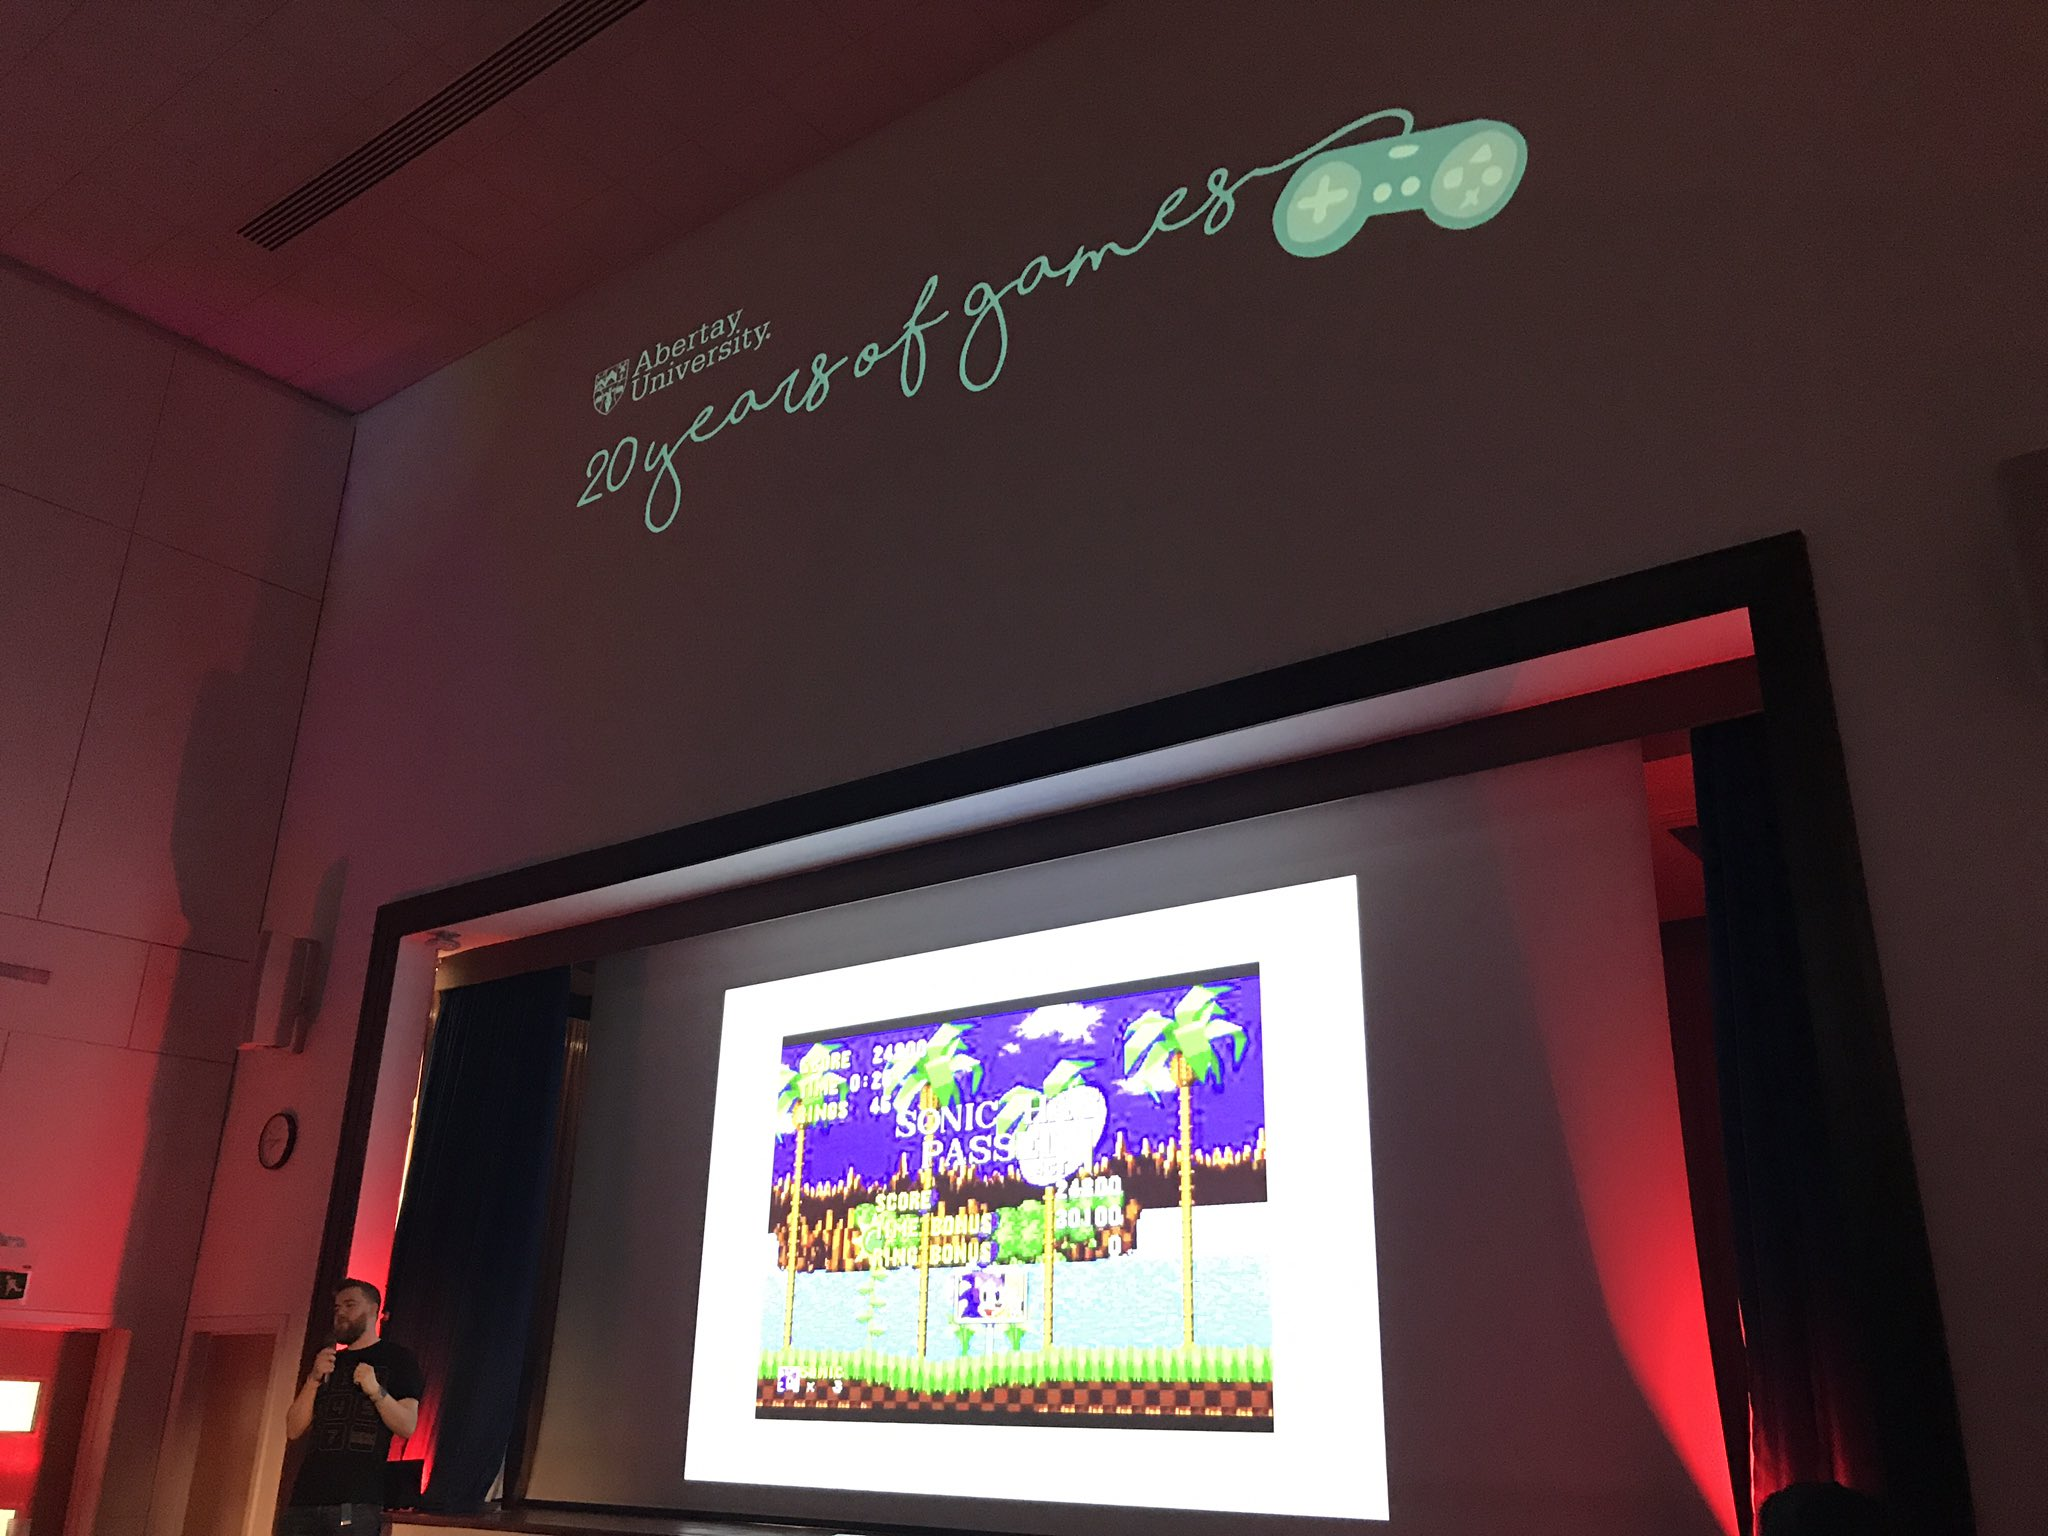 .@mono_eric3 tells his story of games with 20 images #GamesPK #AbertayGames20 https://t.co/njn37yht3a